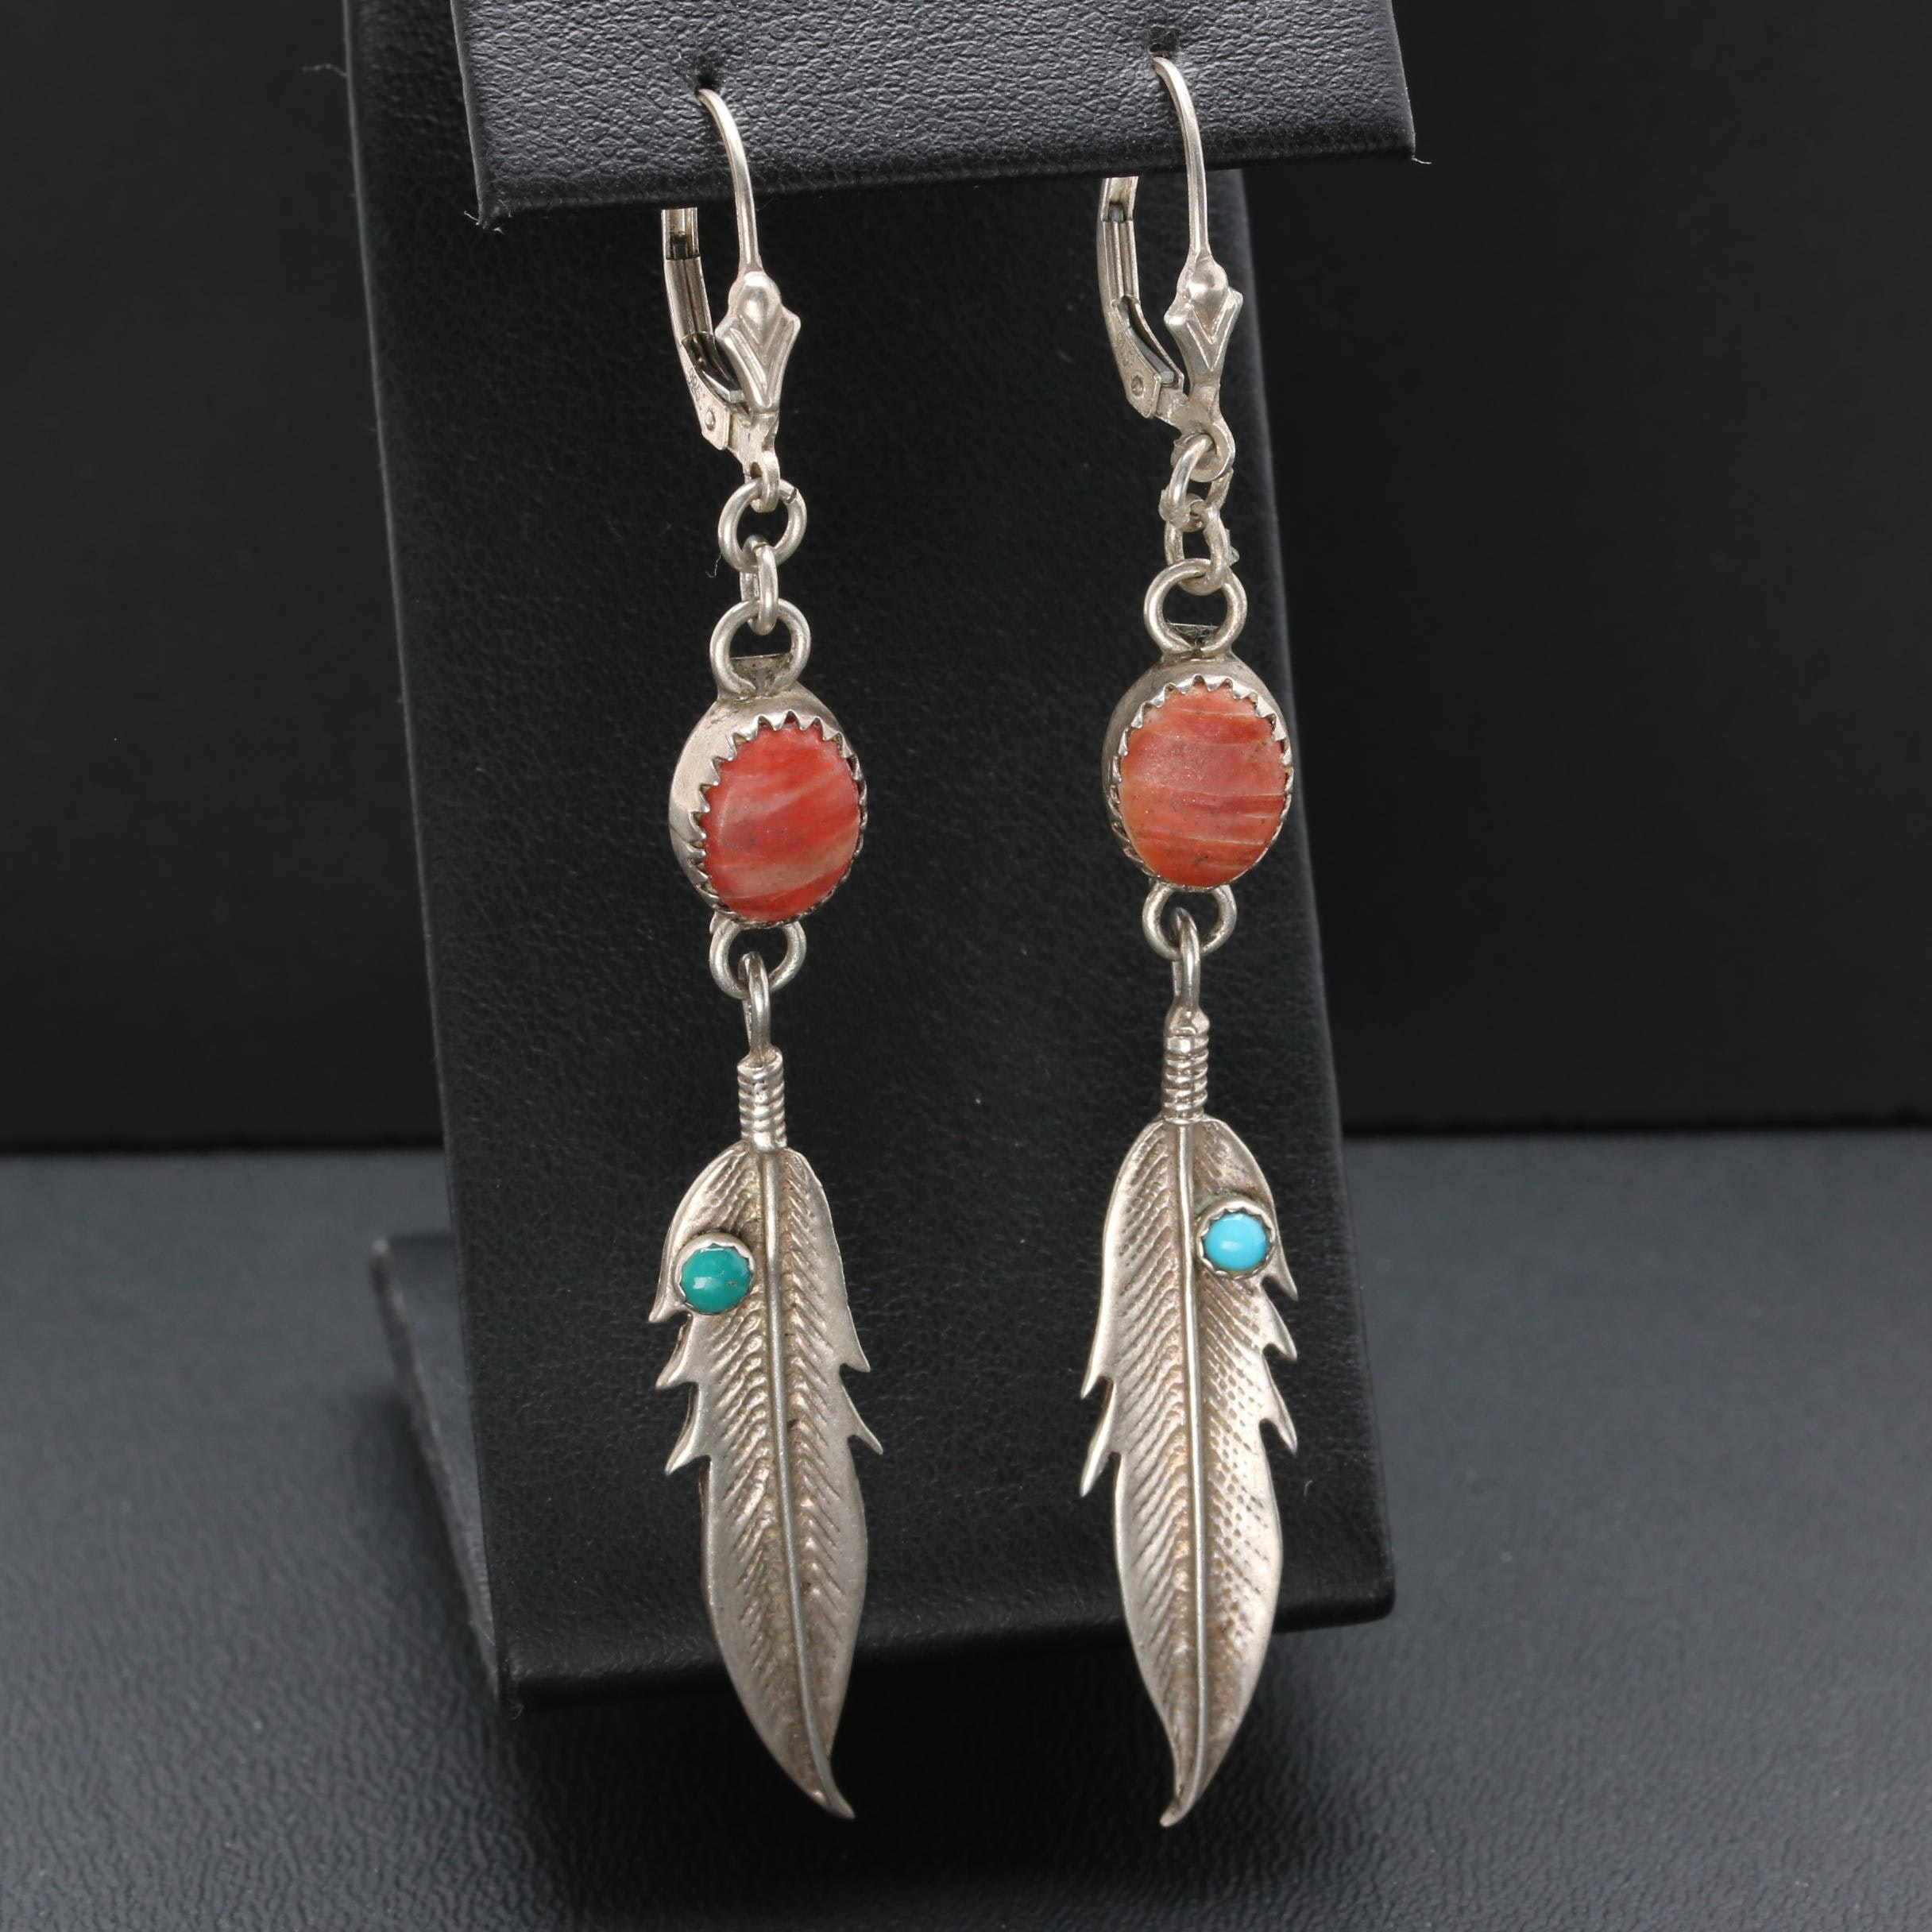 Southwestern Style Sterling Spiny Oyster, Chalcedony, and Turquoise Earrings